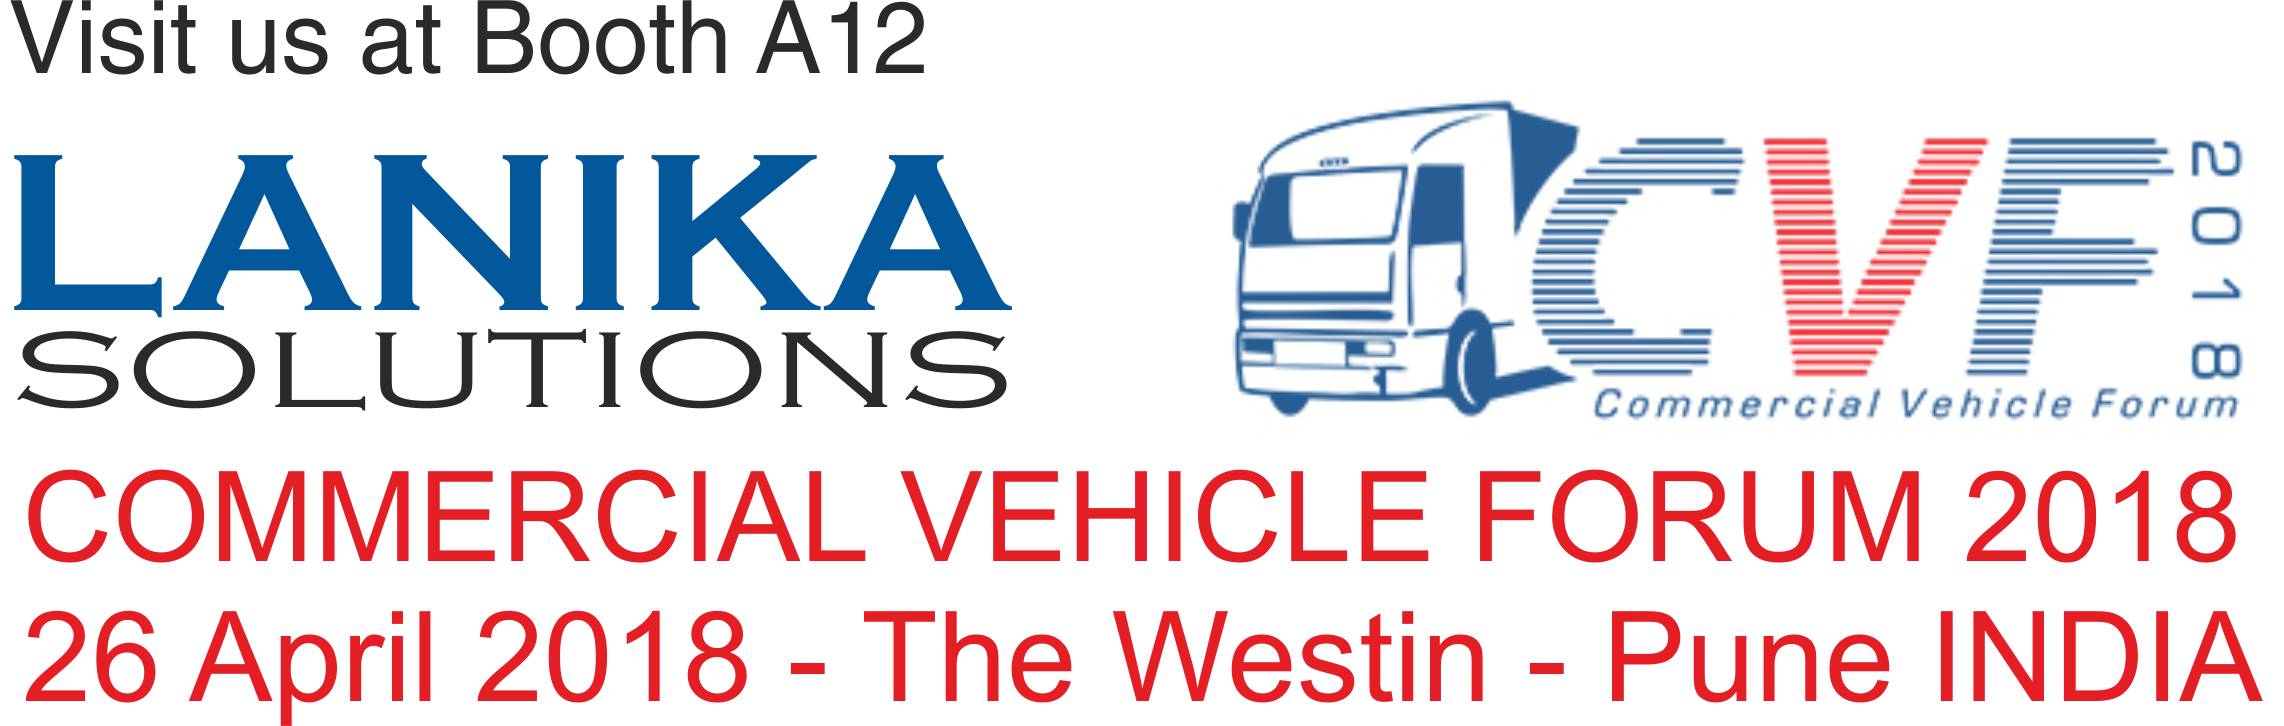 Commercial Vehicle Forum 2018